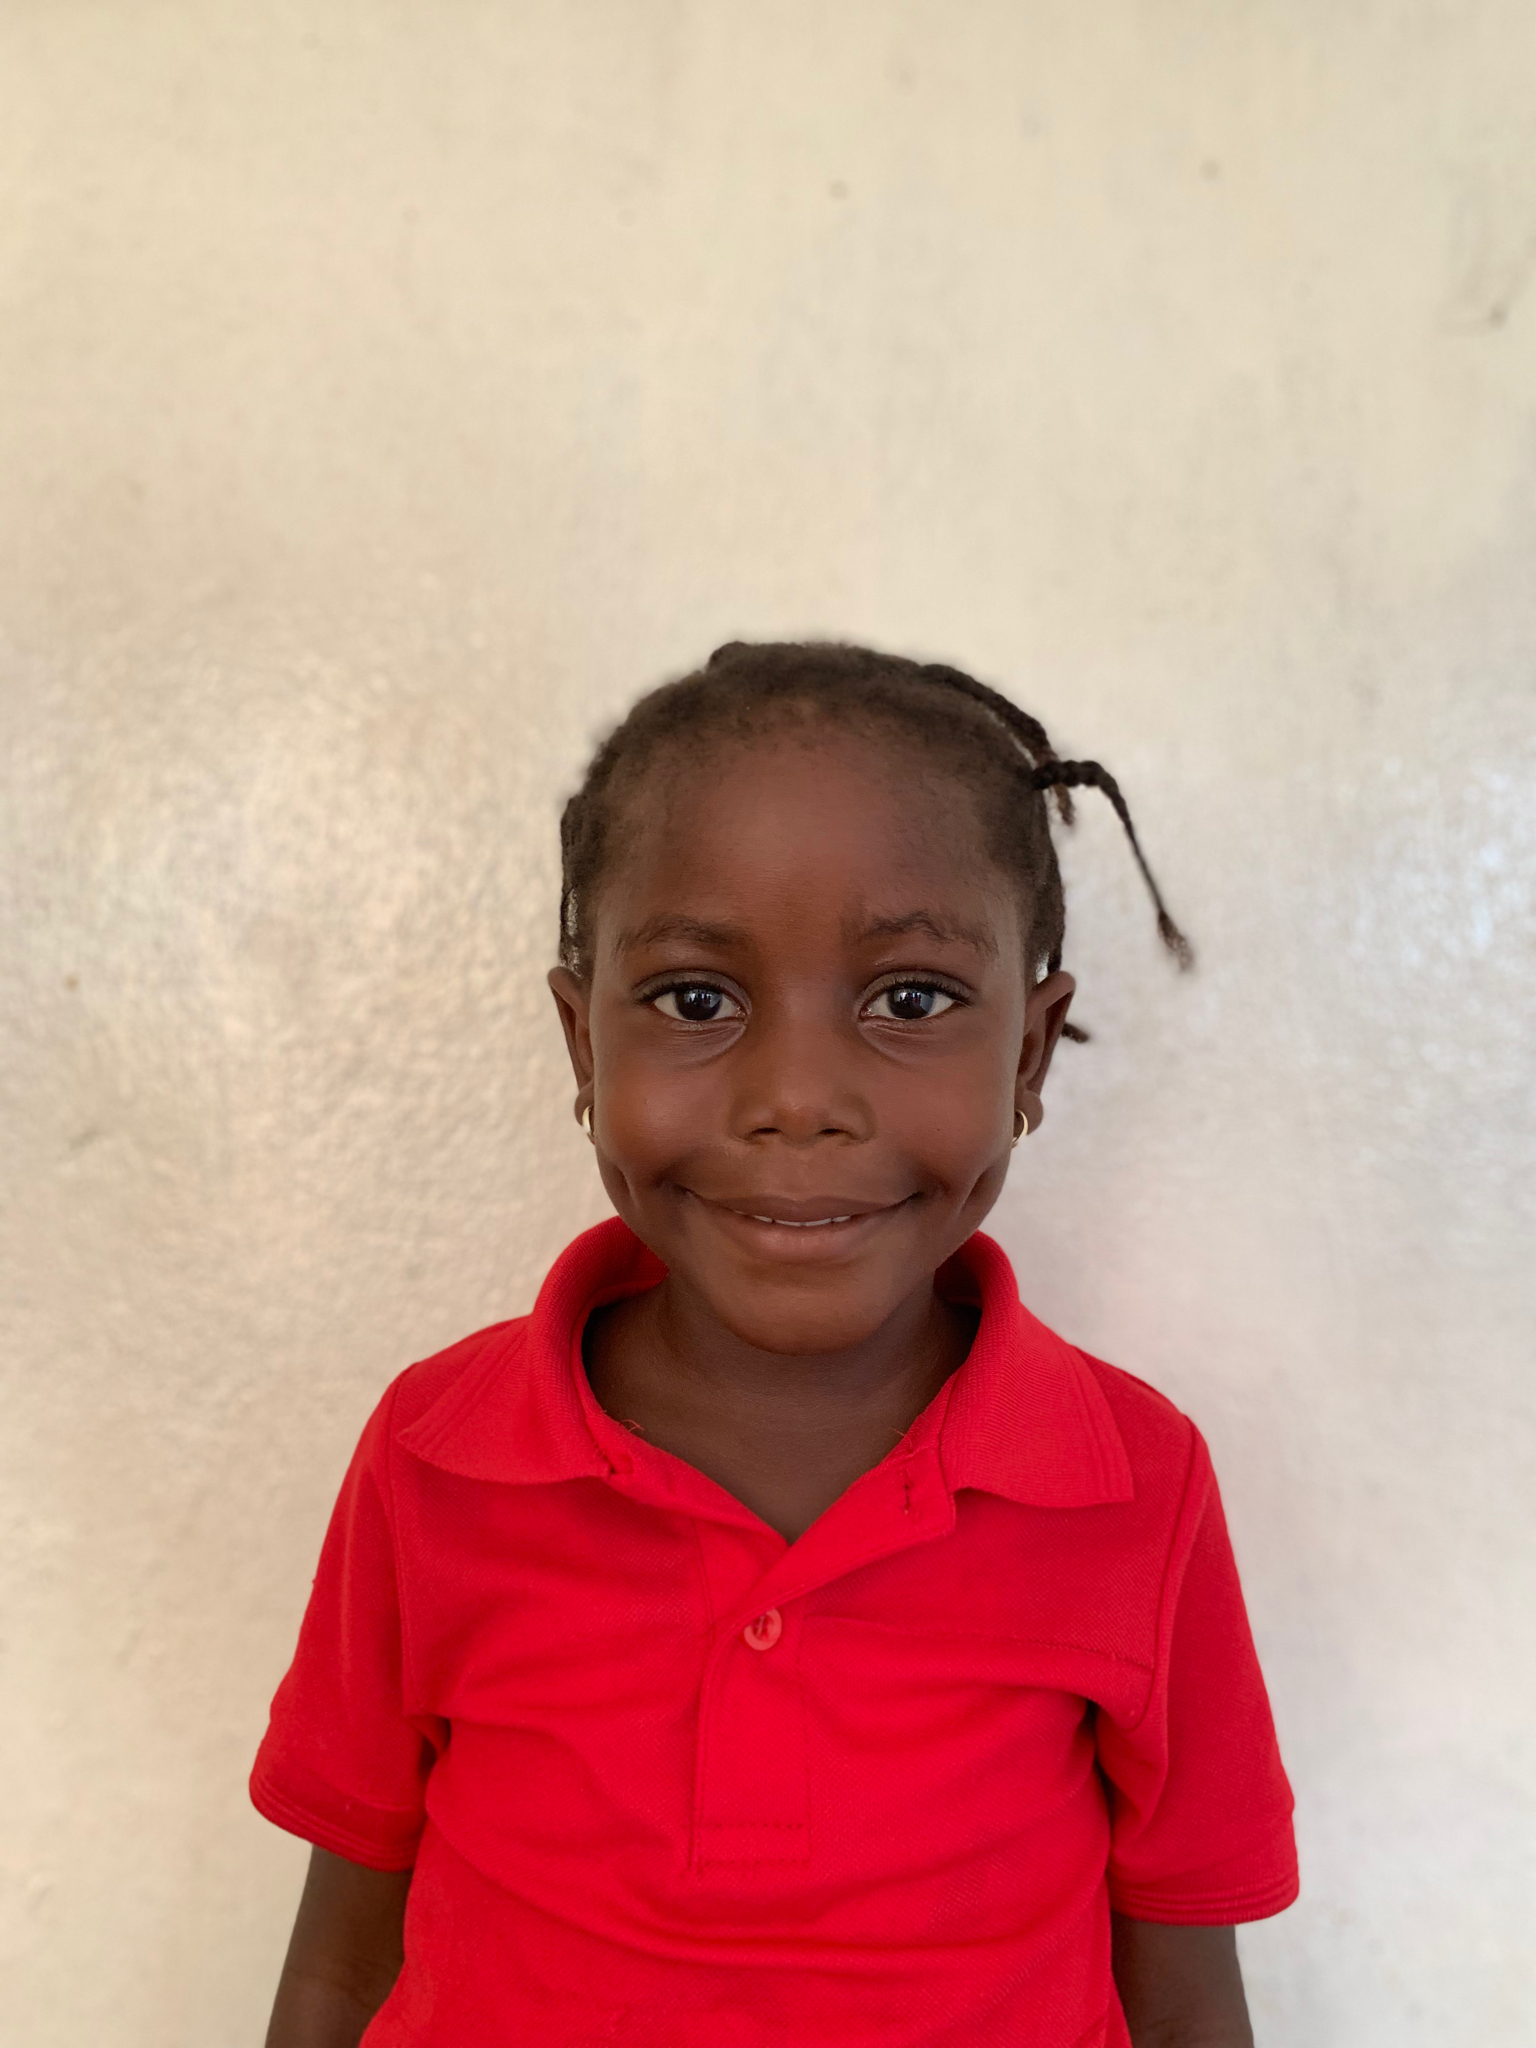 Hello, my name is Esther Yorfee. - Esther is a 4-year-old girl.Esther lives with her mother, sister, and brother; and loves elephants, apples, and the color pink.